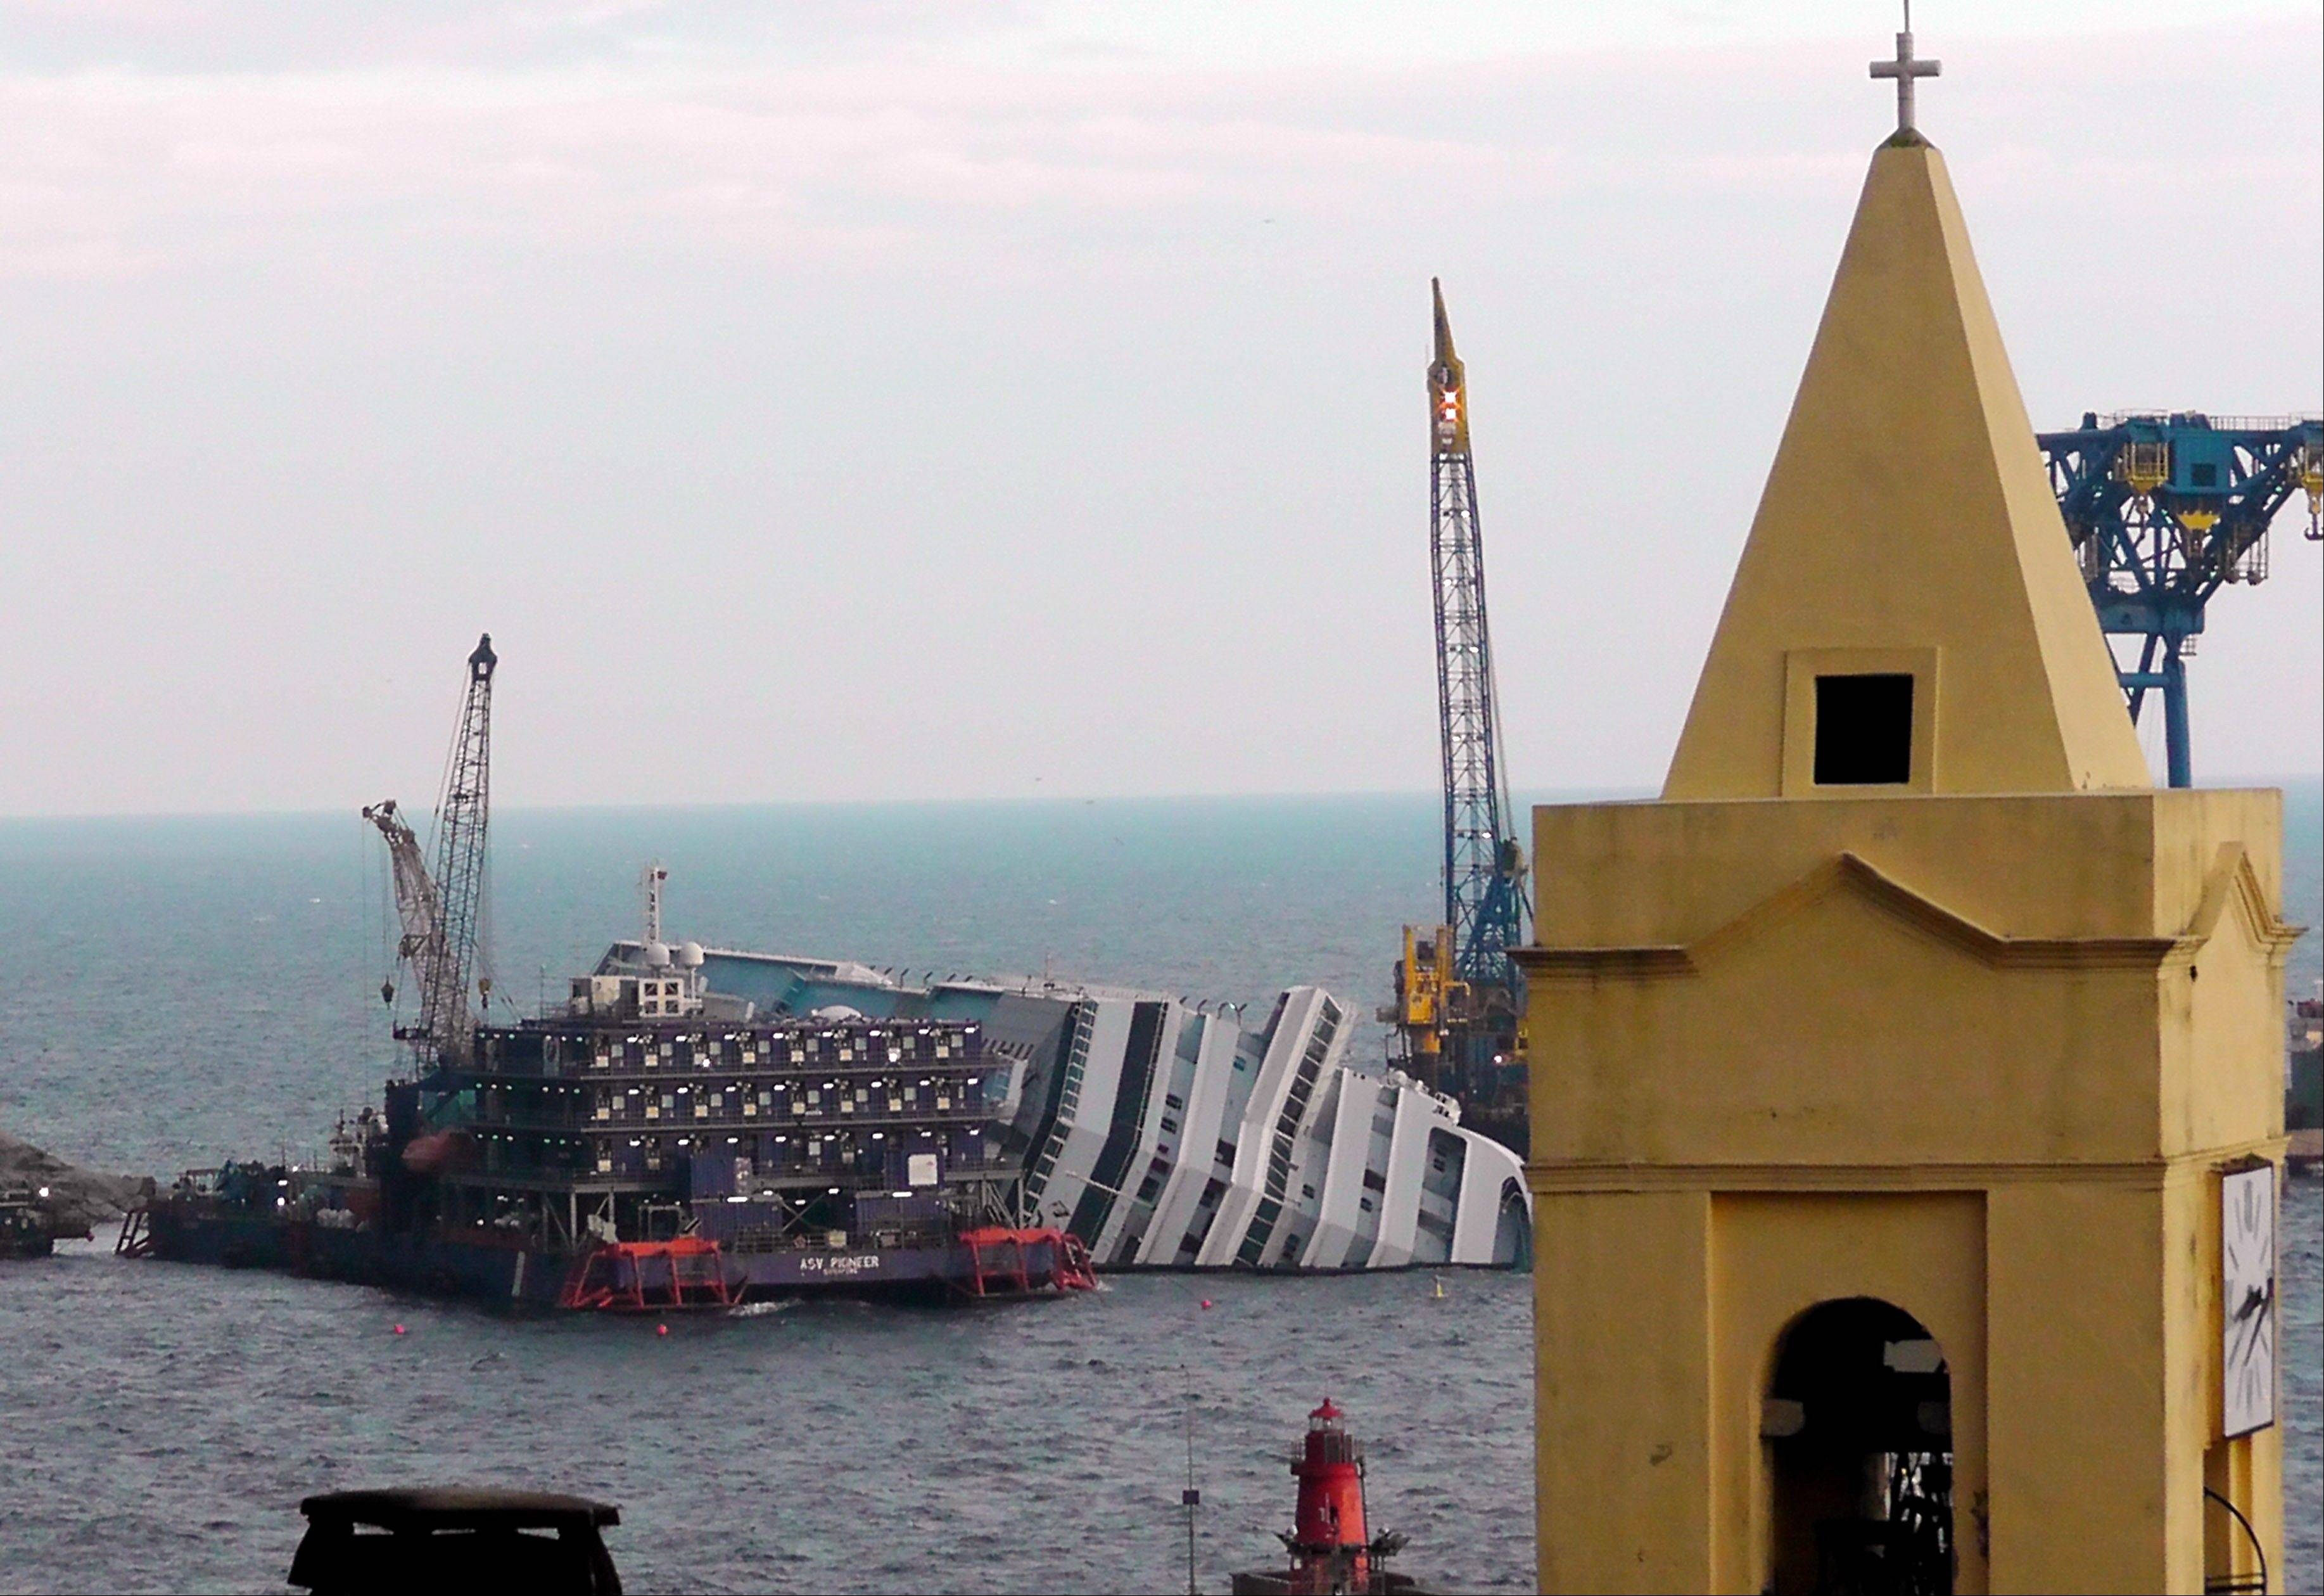 The cruise ship Costa Concordia, leaning on its side, is framed by a church bell tower in the Tuscan island of Giglio, Italy, Friday, Jan. 11, 2013. Passengers who survived the terrifying grounding and capsizing of the Costa Concordia off Tuscany have come in for a rude shock as they mark the first anniversary of the disaster on Sunday. Ship owner Costa Crociere SpA sent several passengers a letter